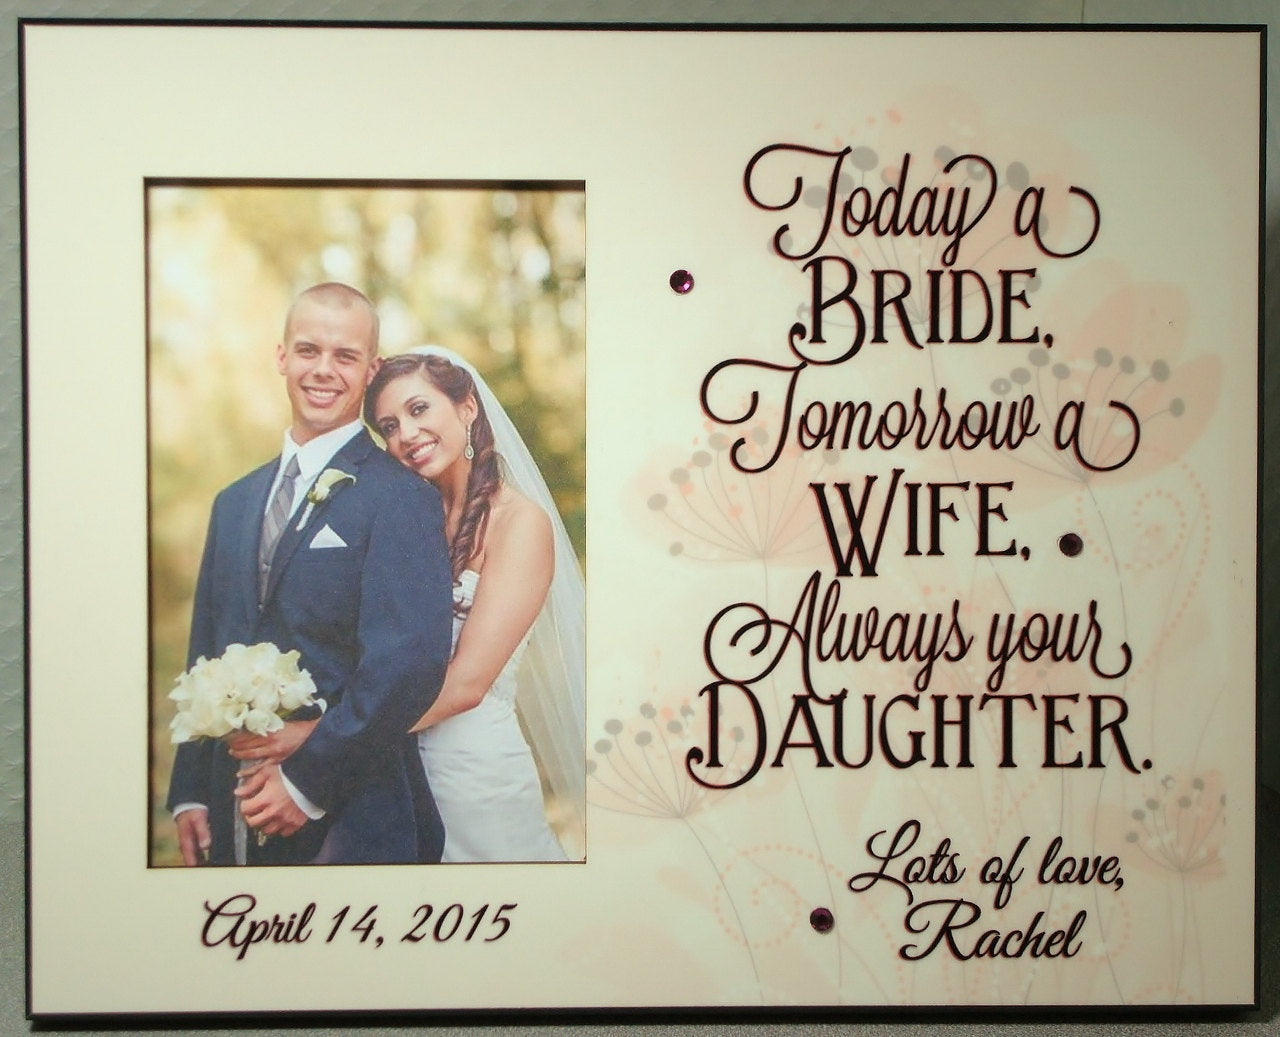 Parent Personalized Photo Wedding Gift from Daughter Today a Bride - Always your Daughter